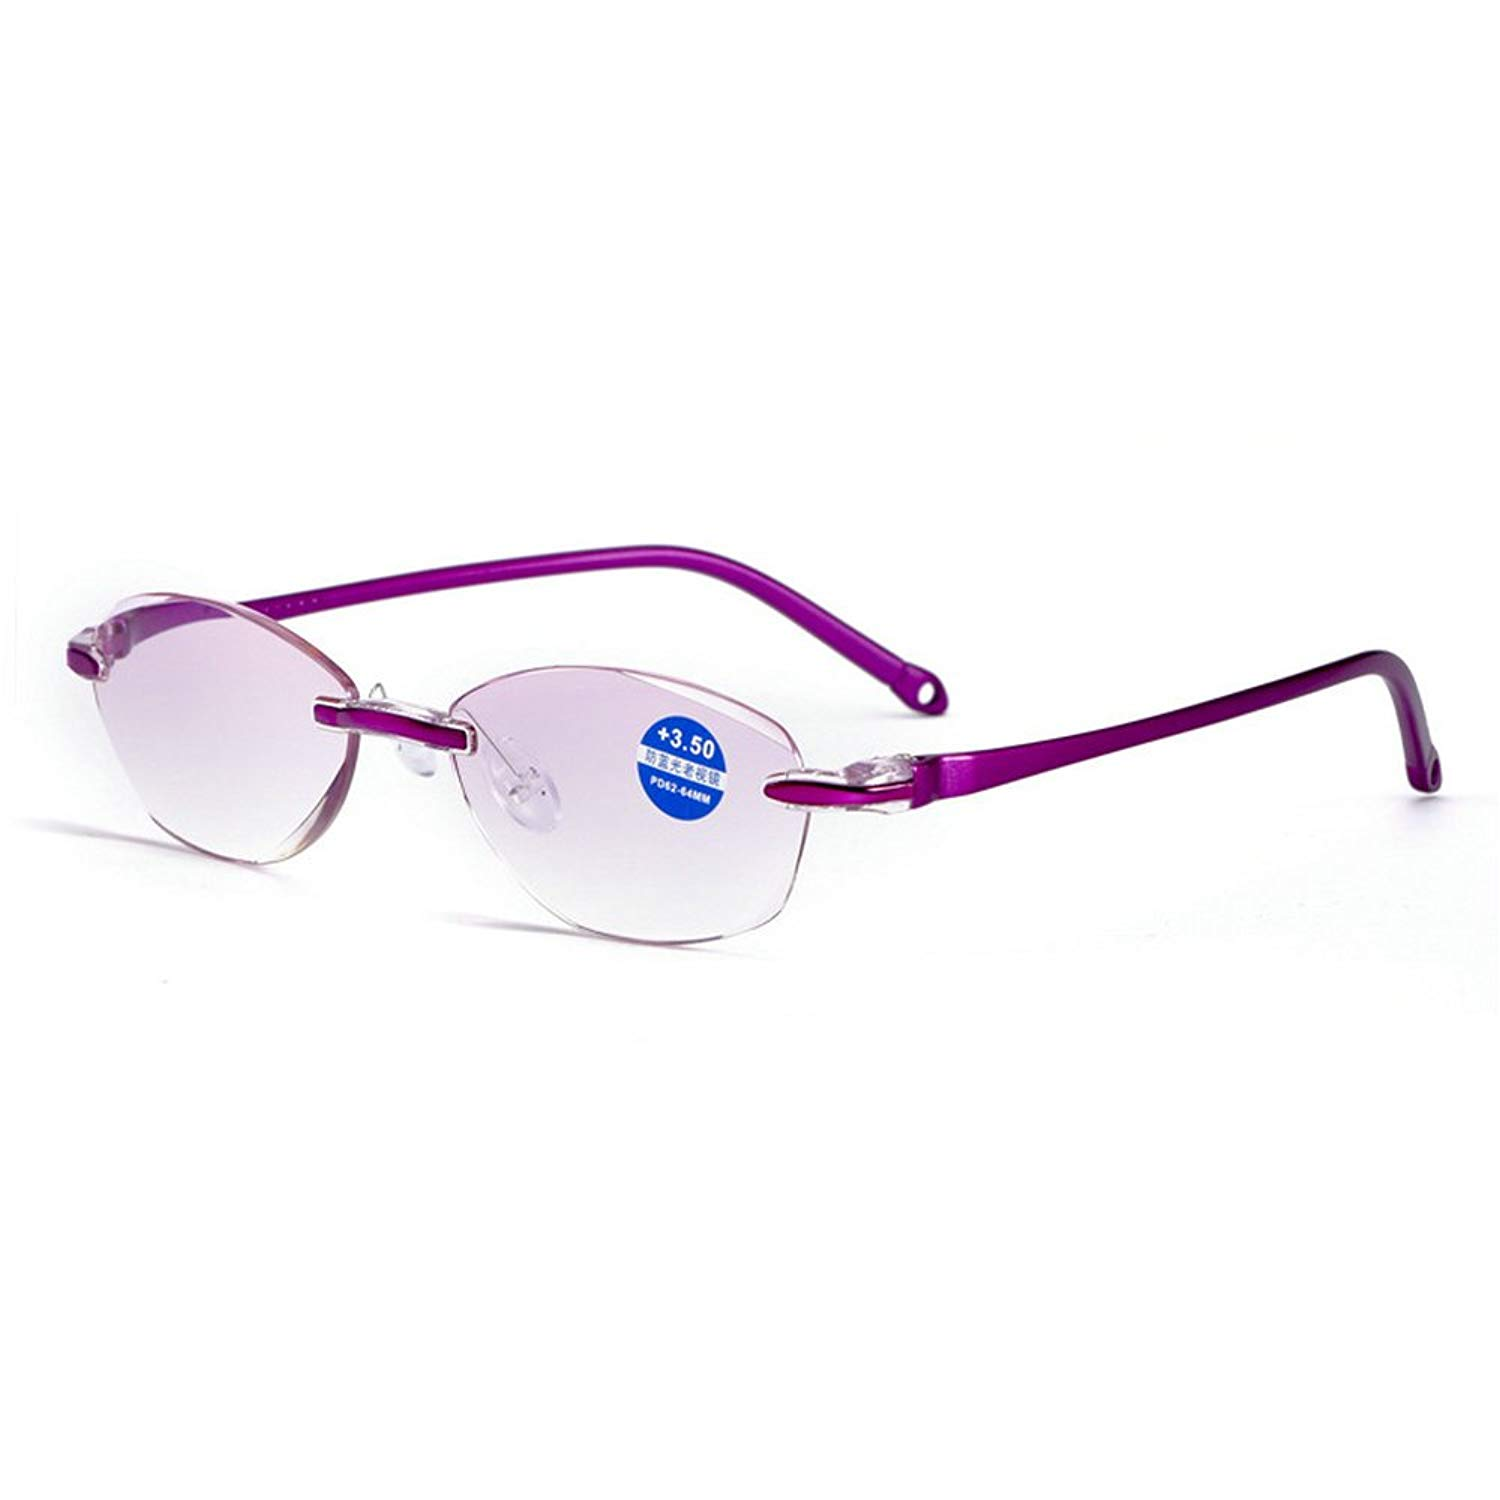 95bbc509521 Get Quotations · MINCL TR90 Rimless Blue Light Blocking Reading Glasses  Womens Lady Red Purple Eyewear